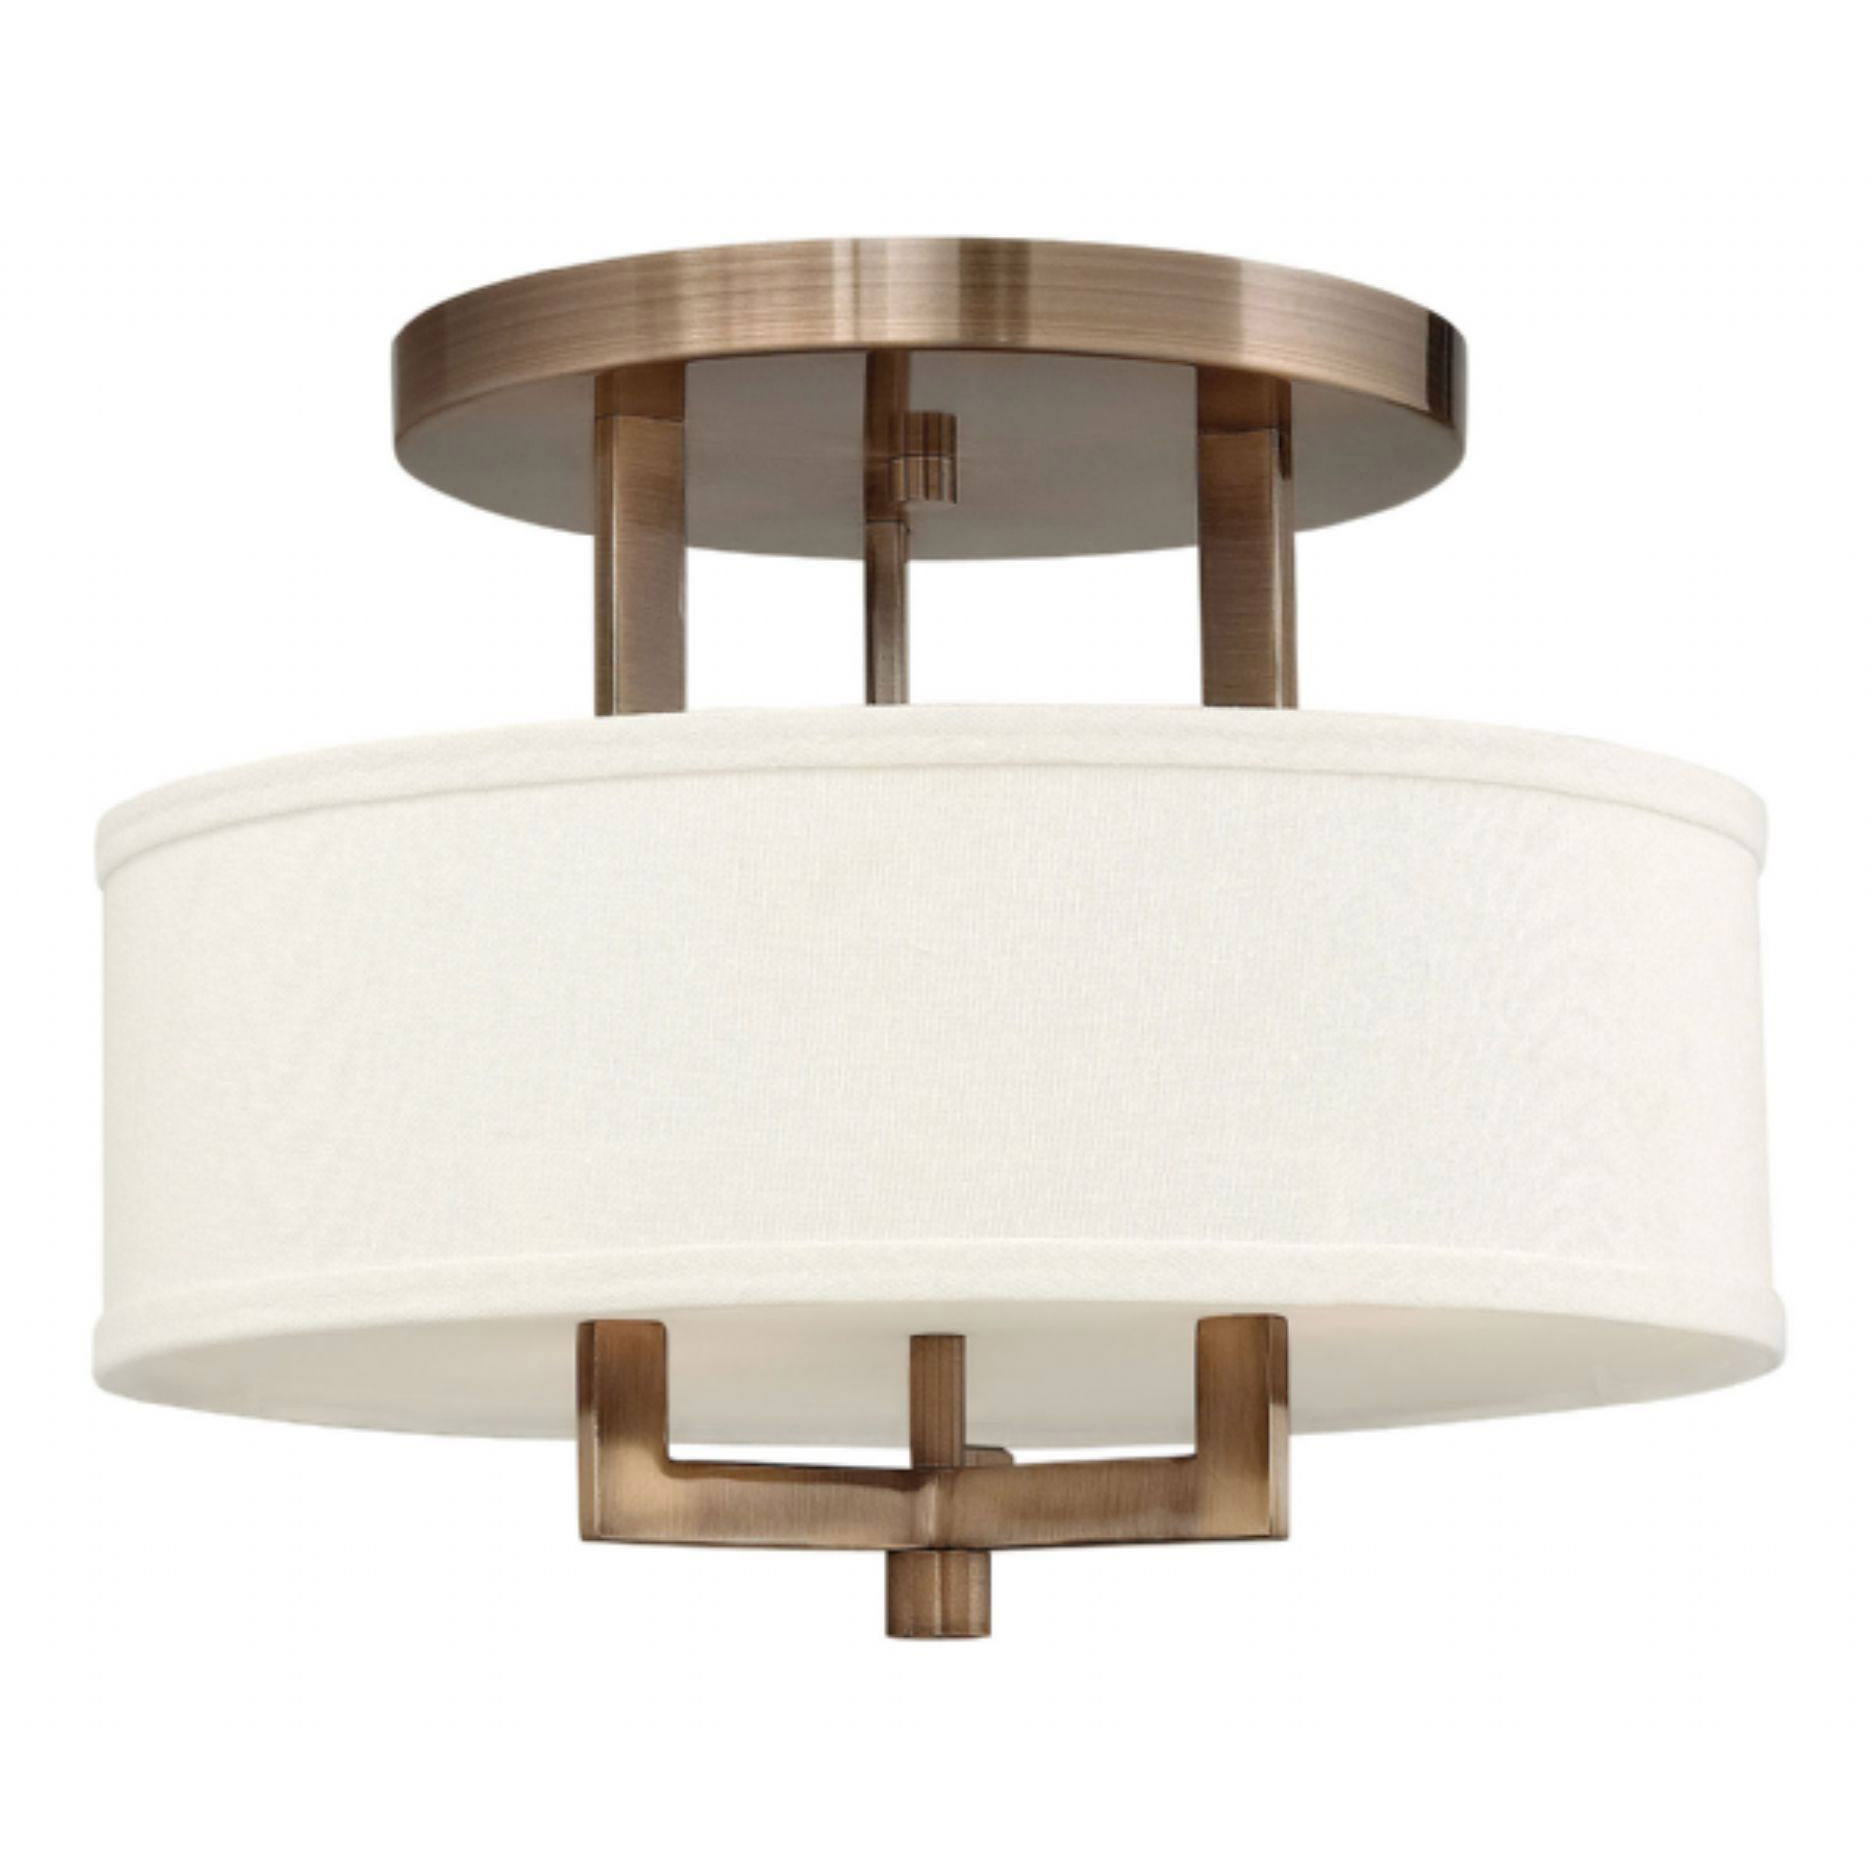 Inspiring semi flush ceiling light for home lighting design with brushed nickel semi flush ceiling light